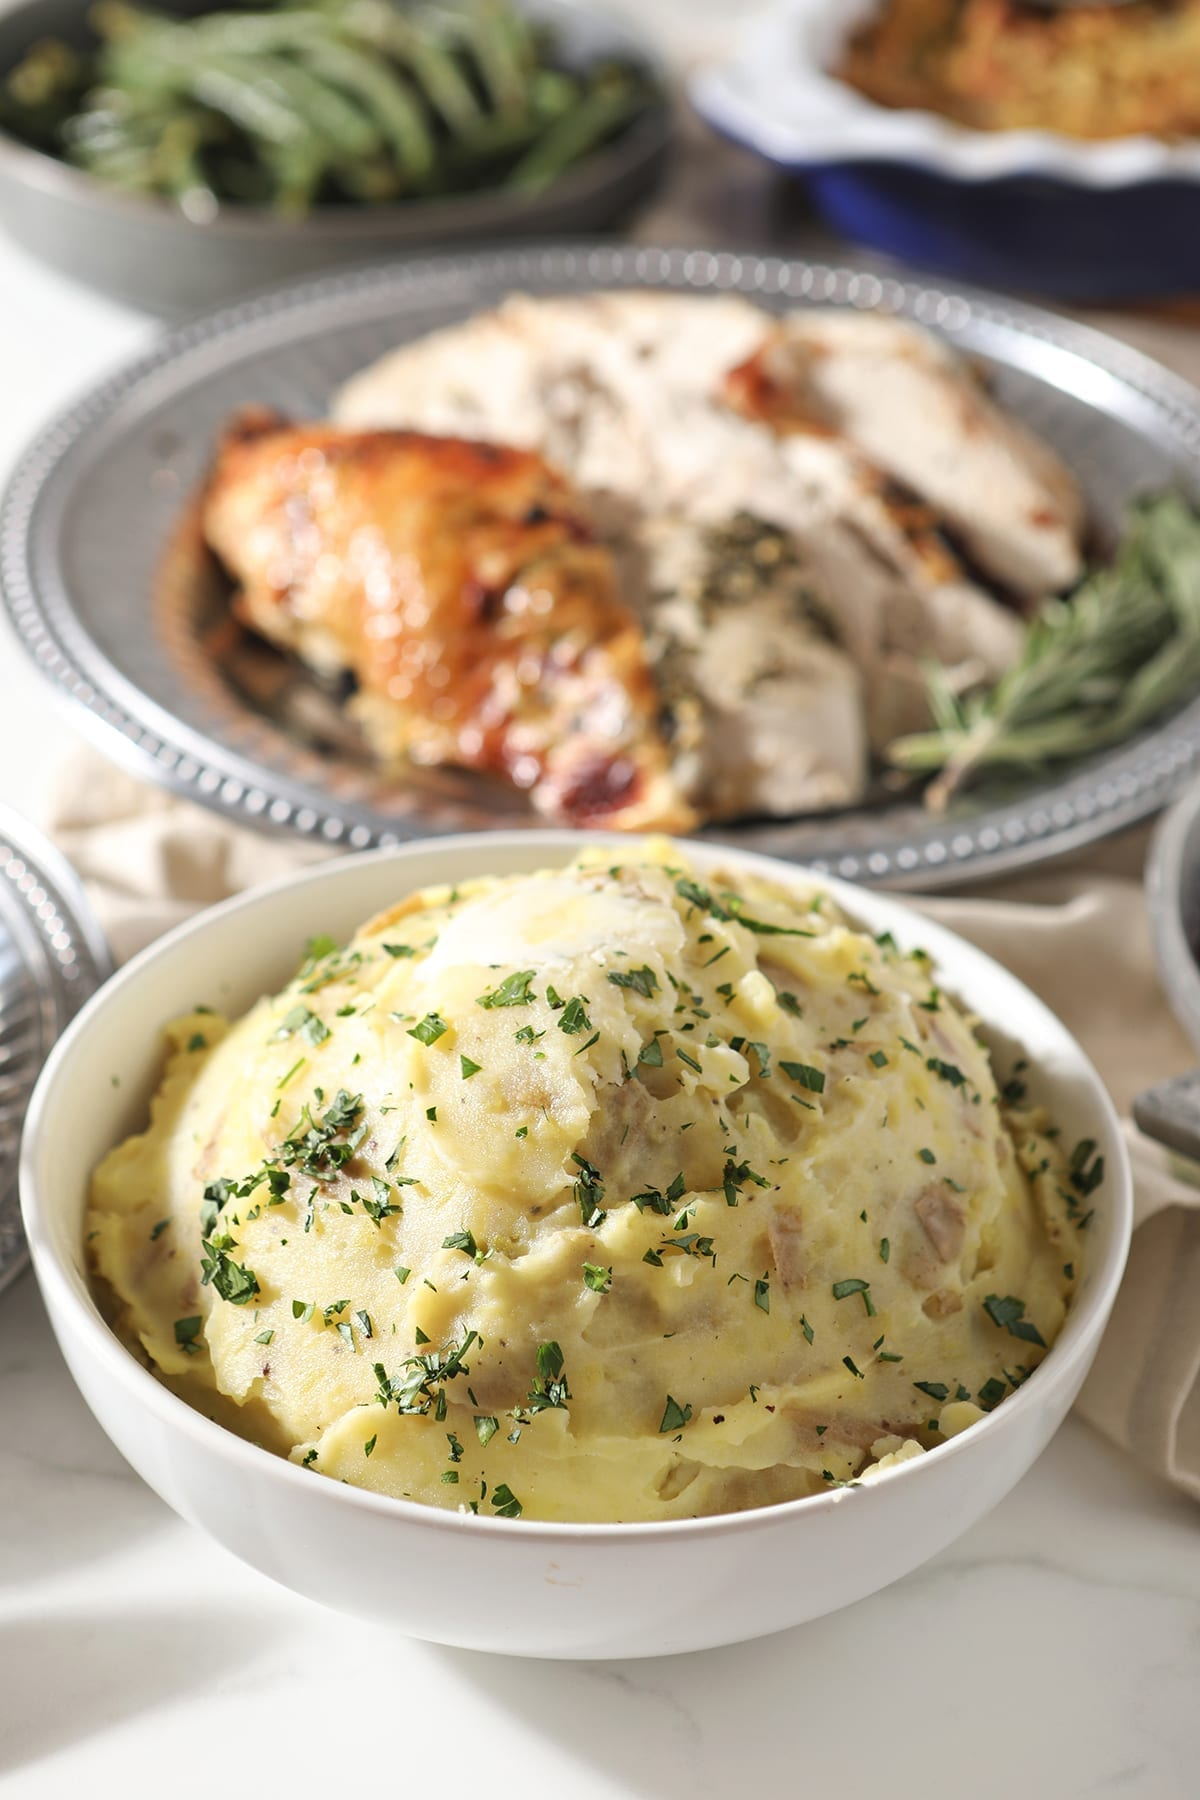 A bowl of mashed potatoes sits in front of a silver platter holding turkey, surrounded by other holiday dishes